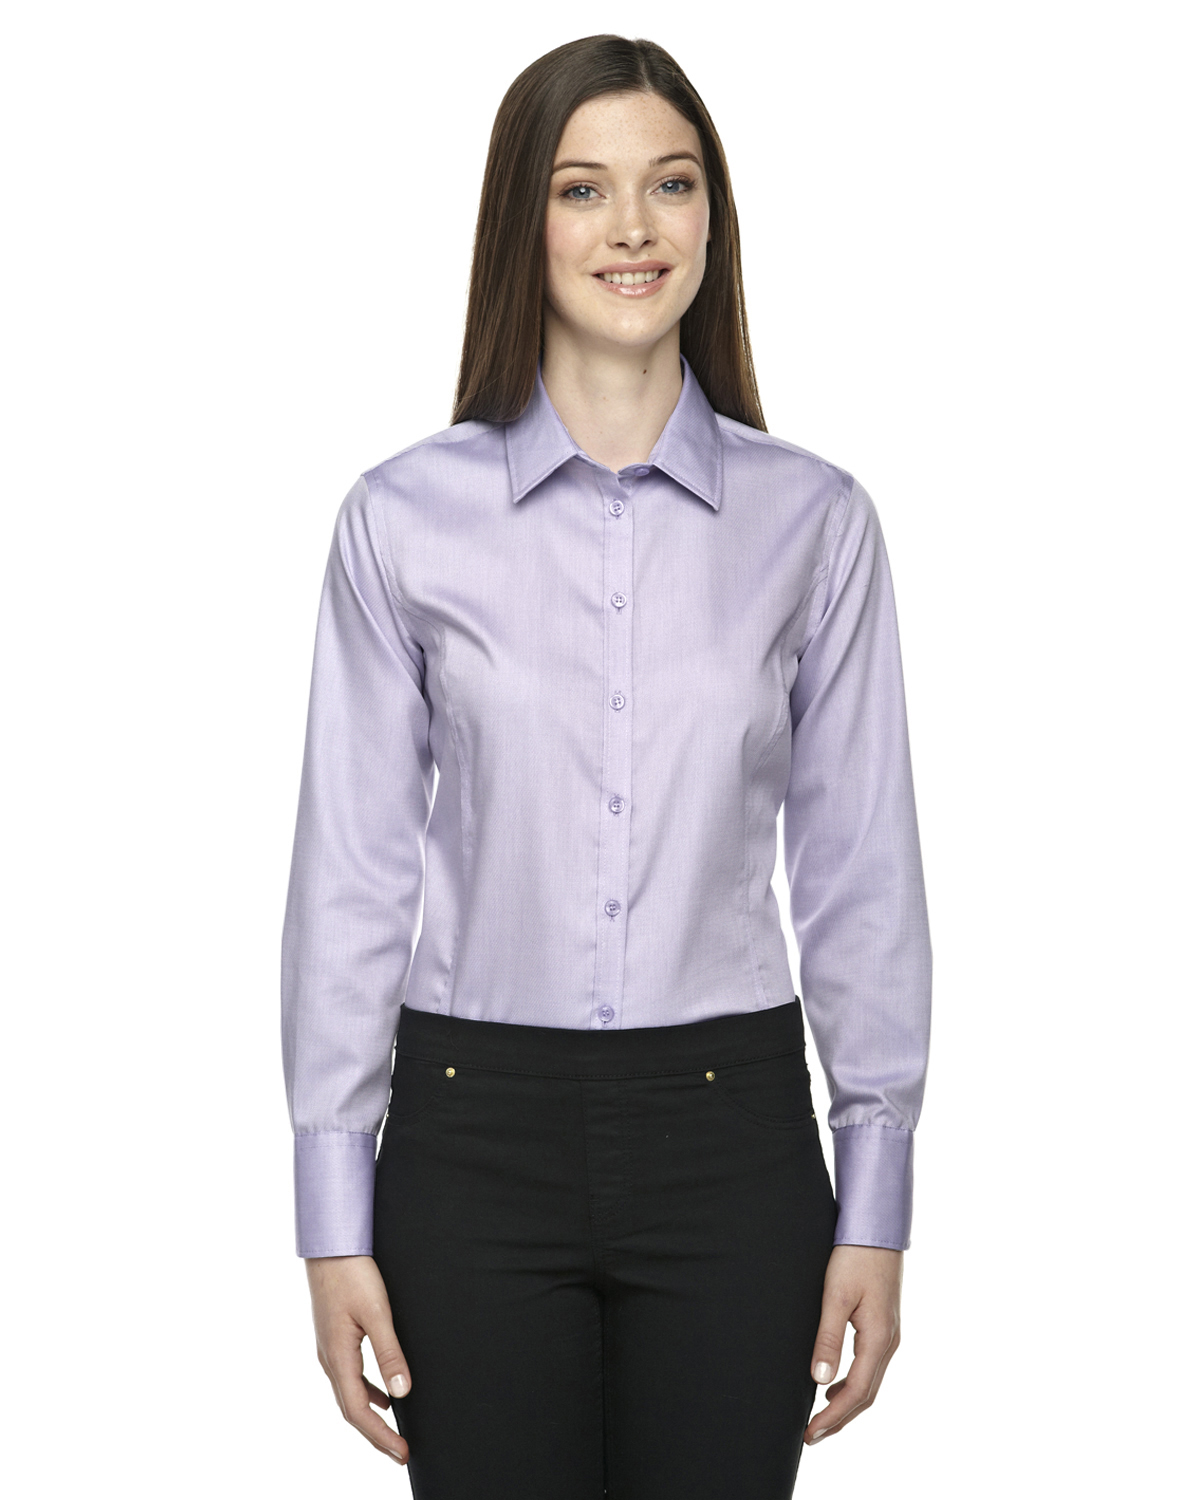 North end 78673 Wrinkle free shirts for women